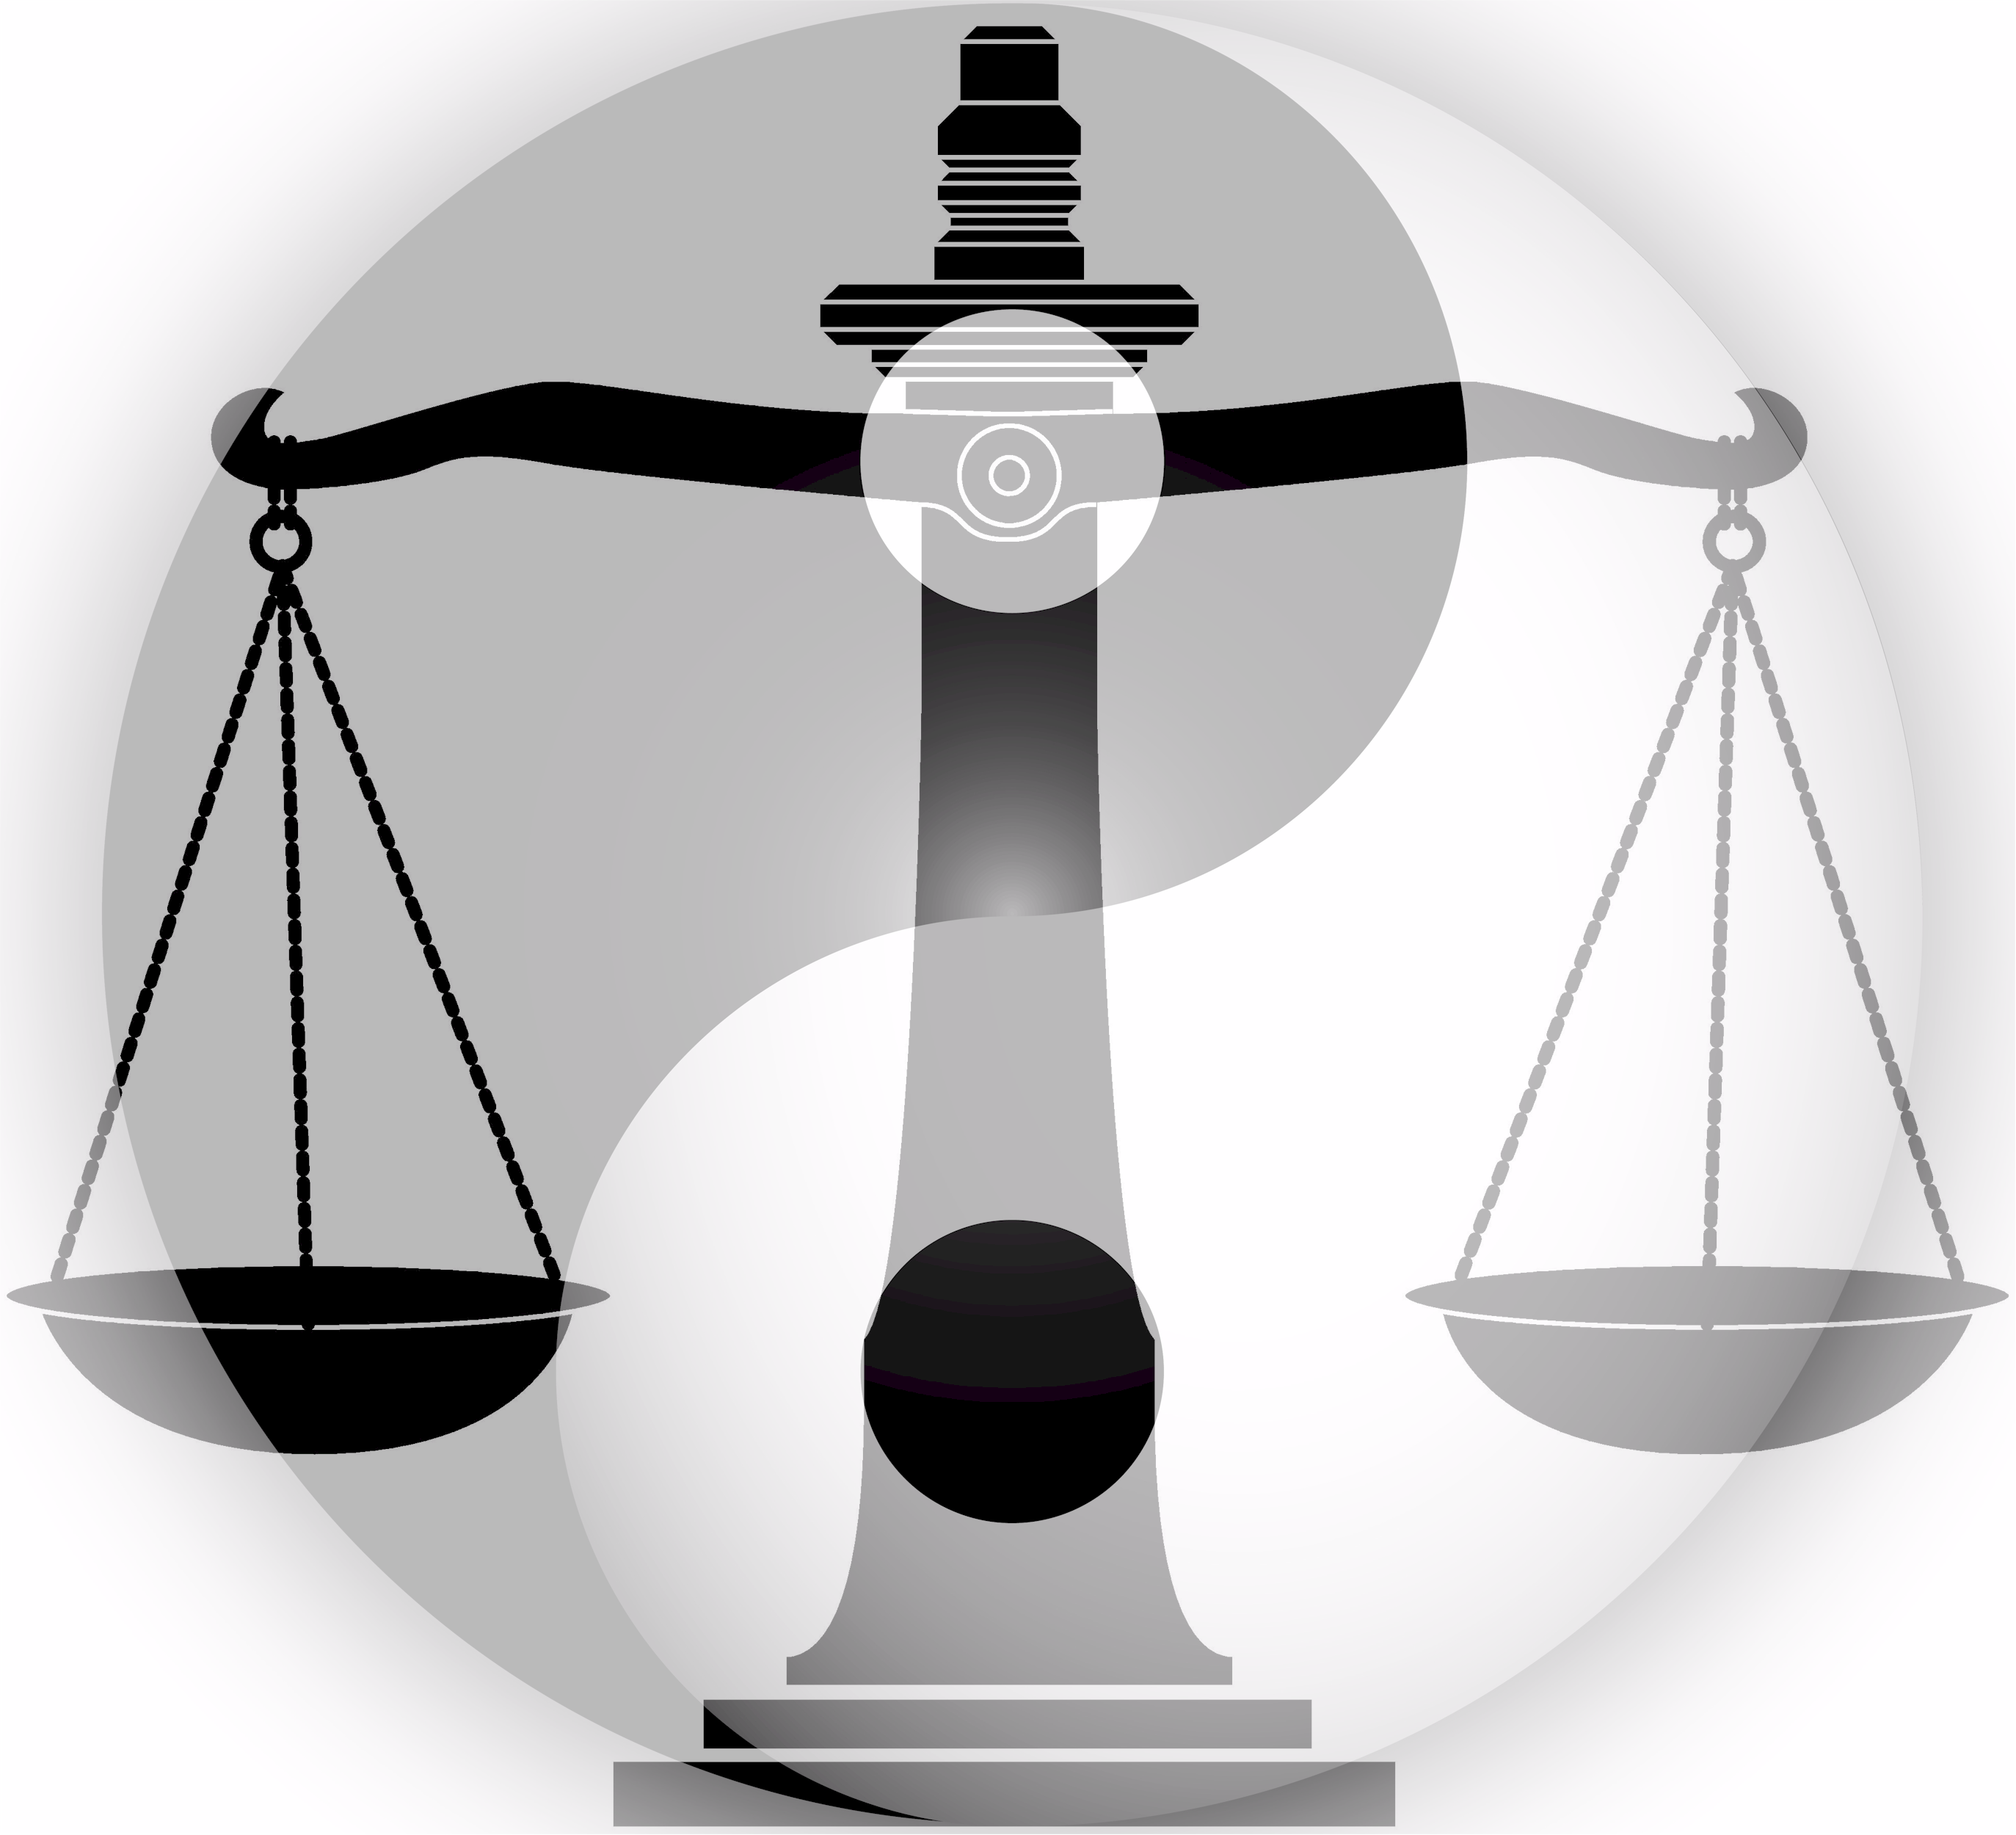 justice-scales-yin-yang-image